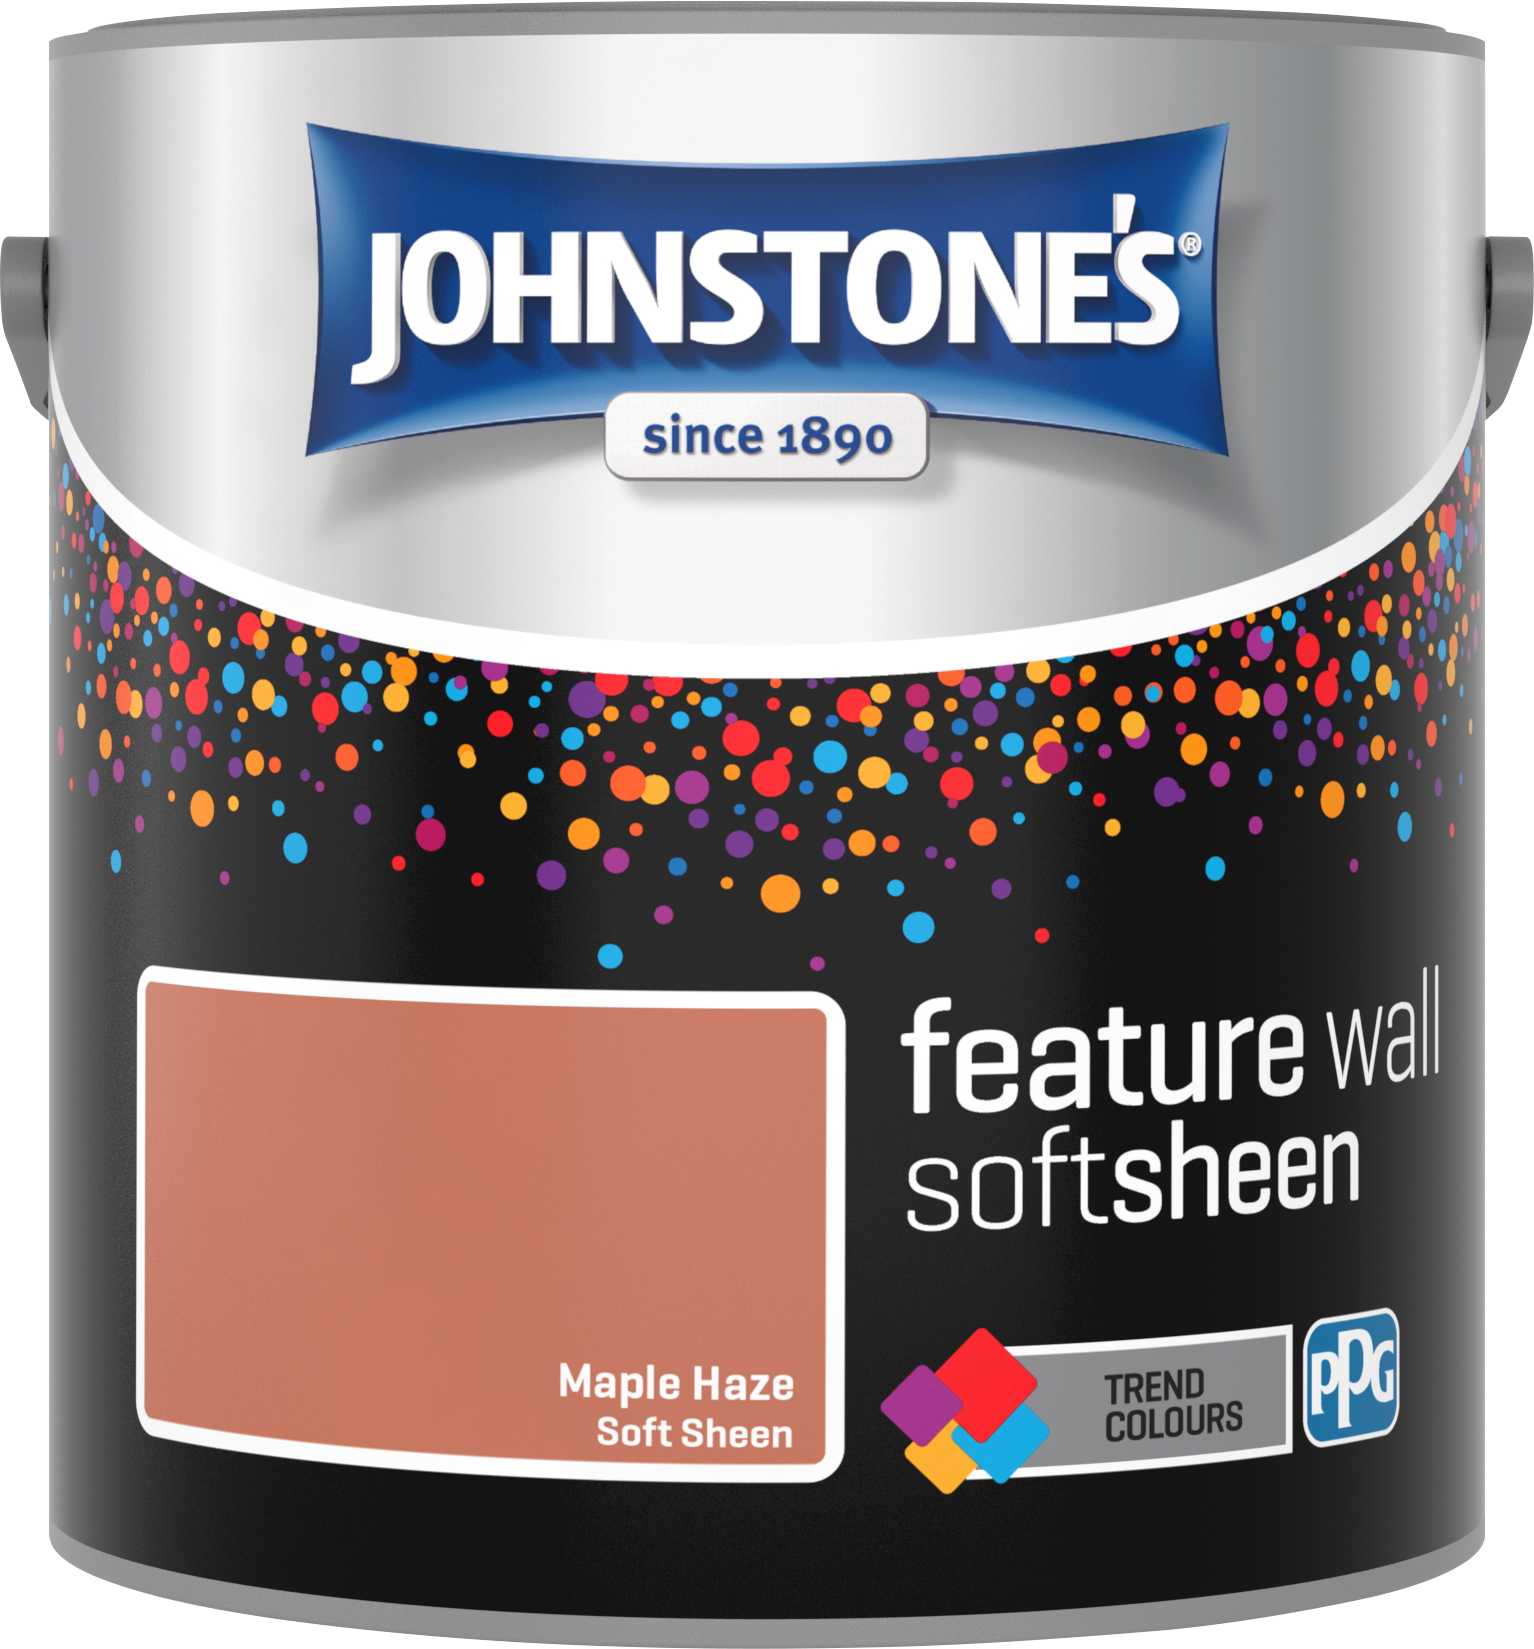 Johnstone's 2.5 Litre Feature Wall Soft Sheen Emulsion Paint - Maple Haze